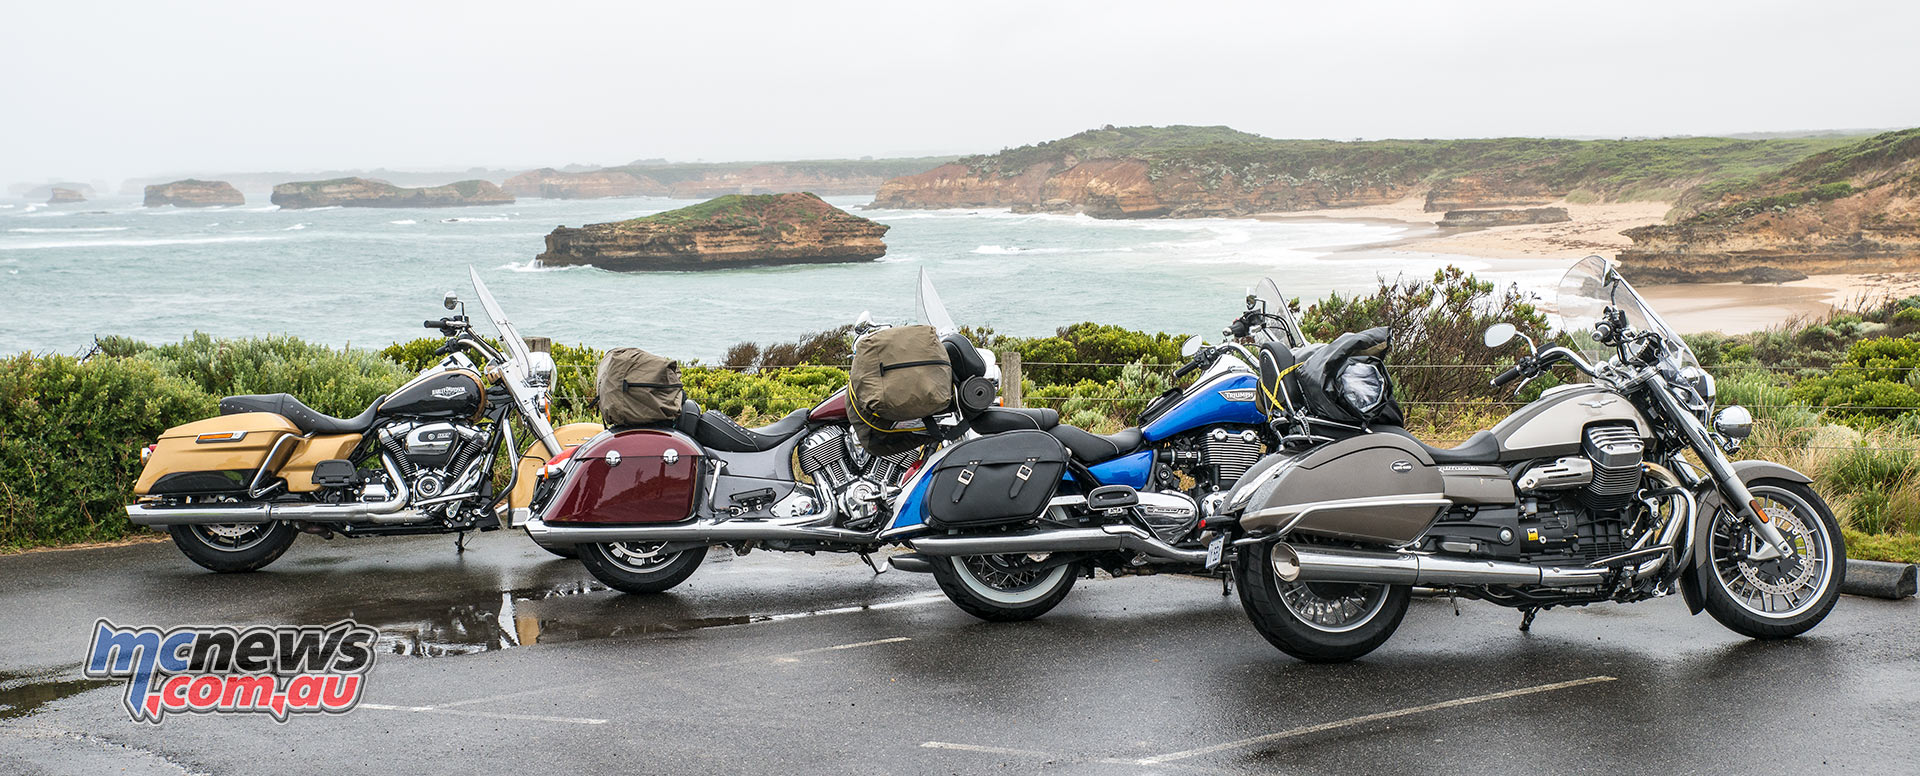 Overlooking the Bay of Islands on The Great Ocean Road